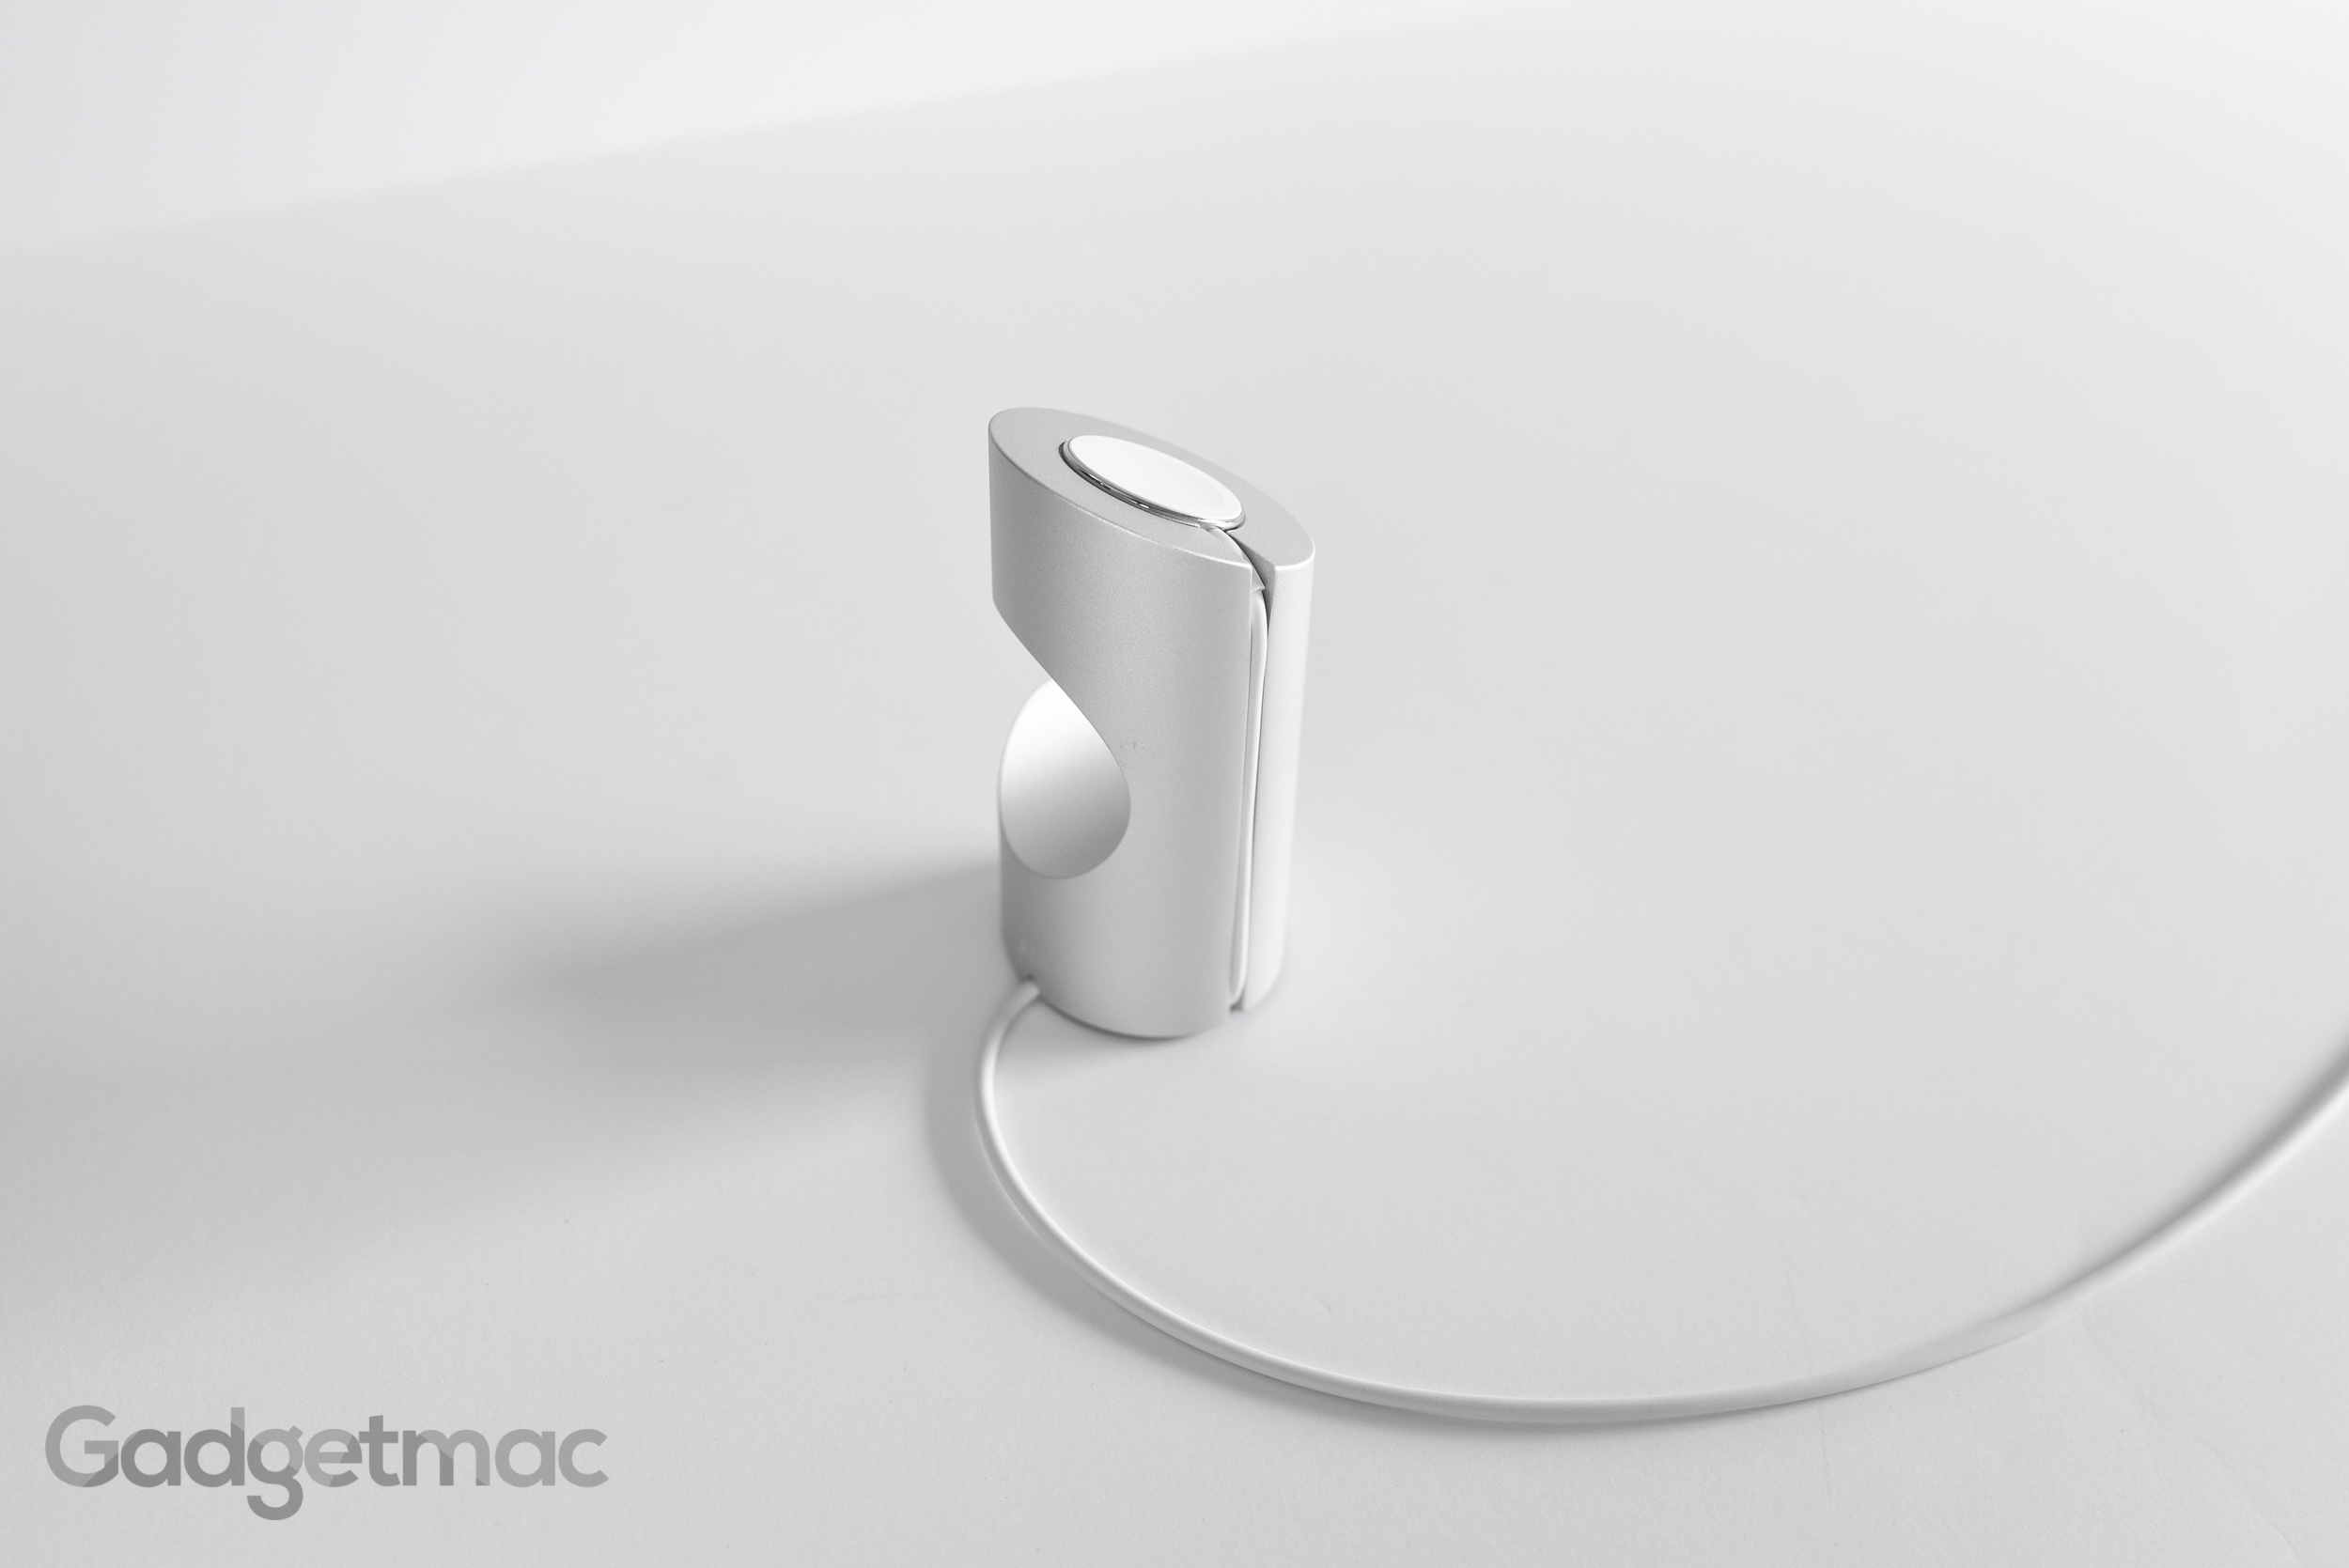 timestand-aluminum-charging-dock-stand-for-apple-watch-side.jpg